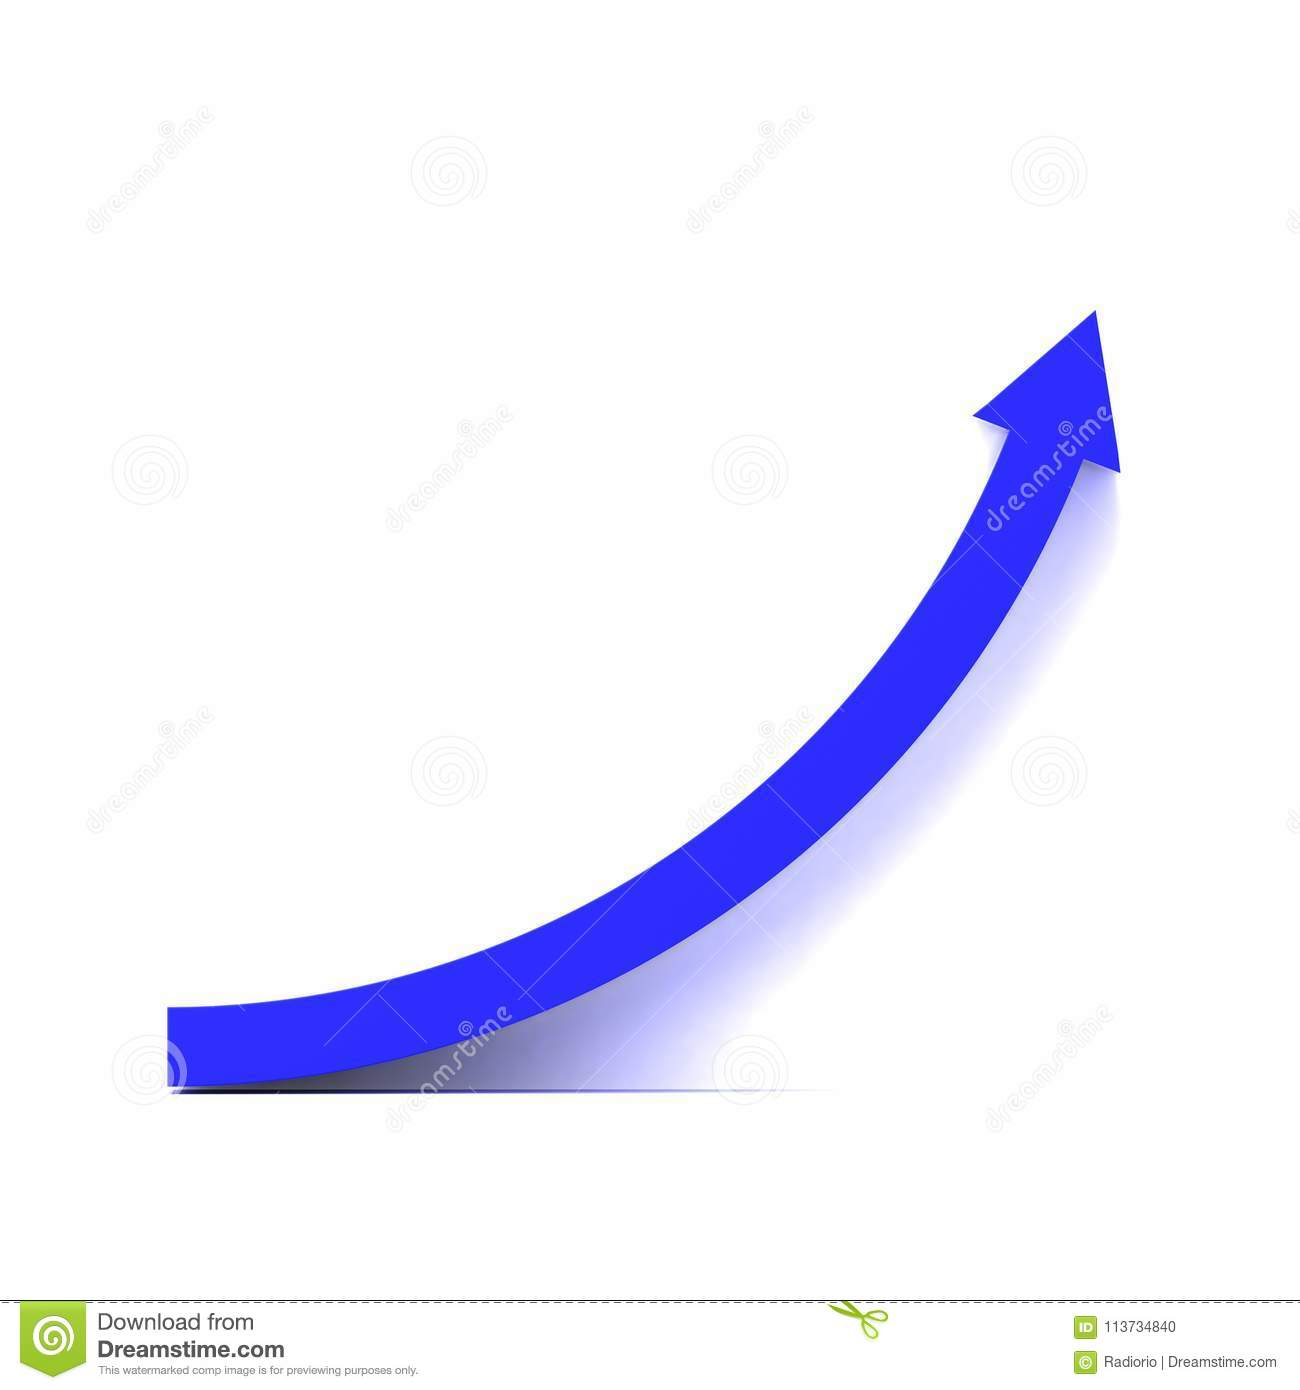 Blue growth curve stock illustration. Illustration of right - 113734840